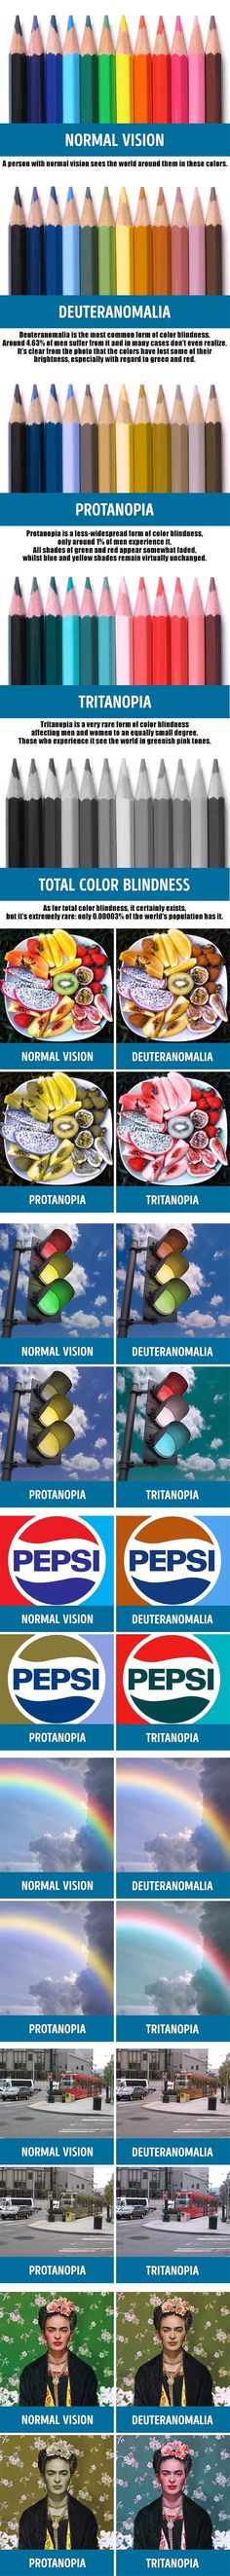 Different types of colorblindness. - 9GAG